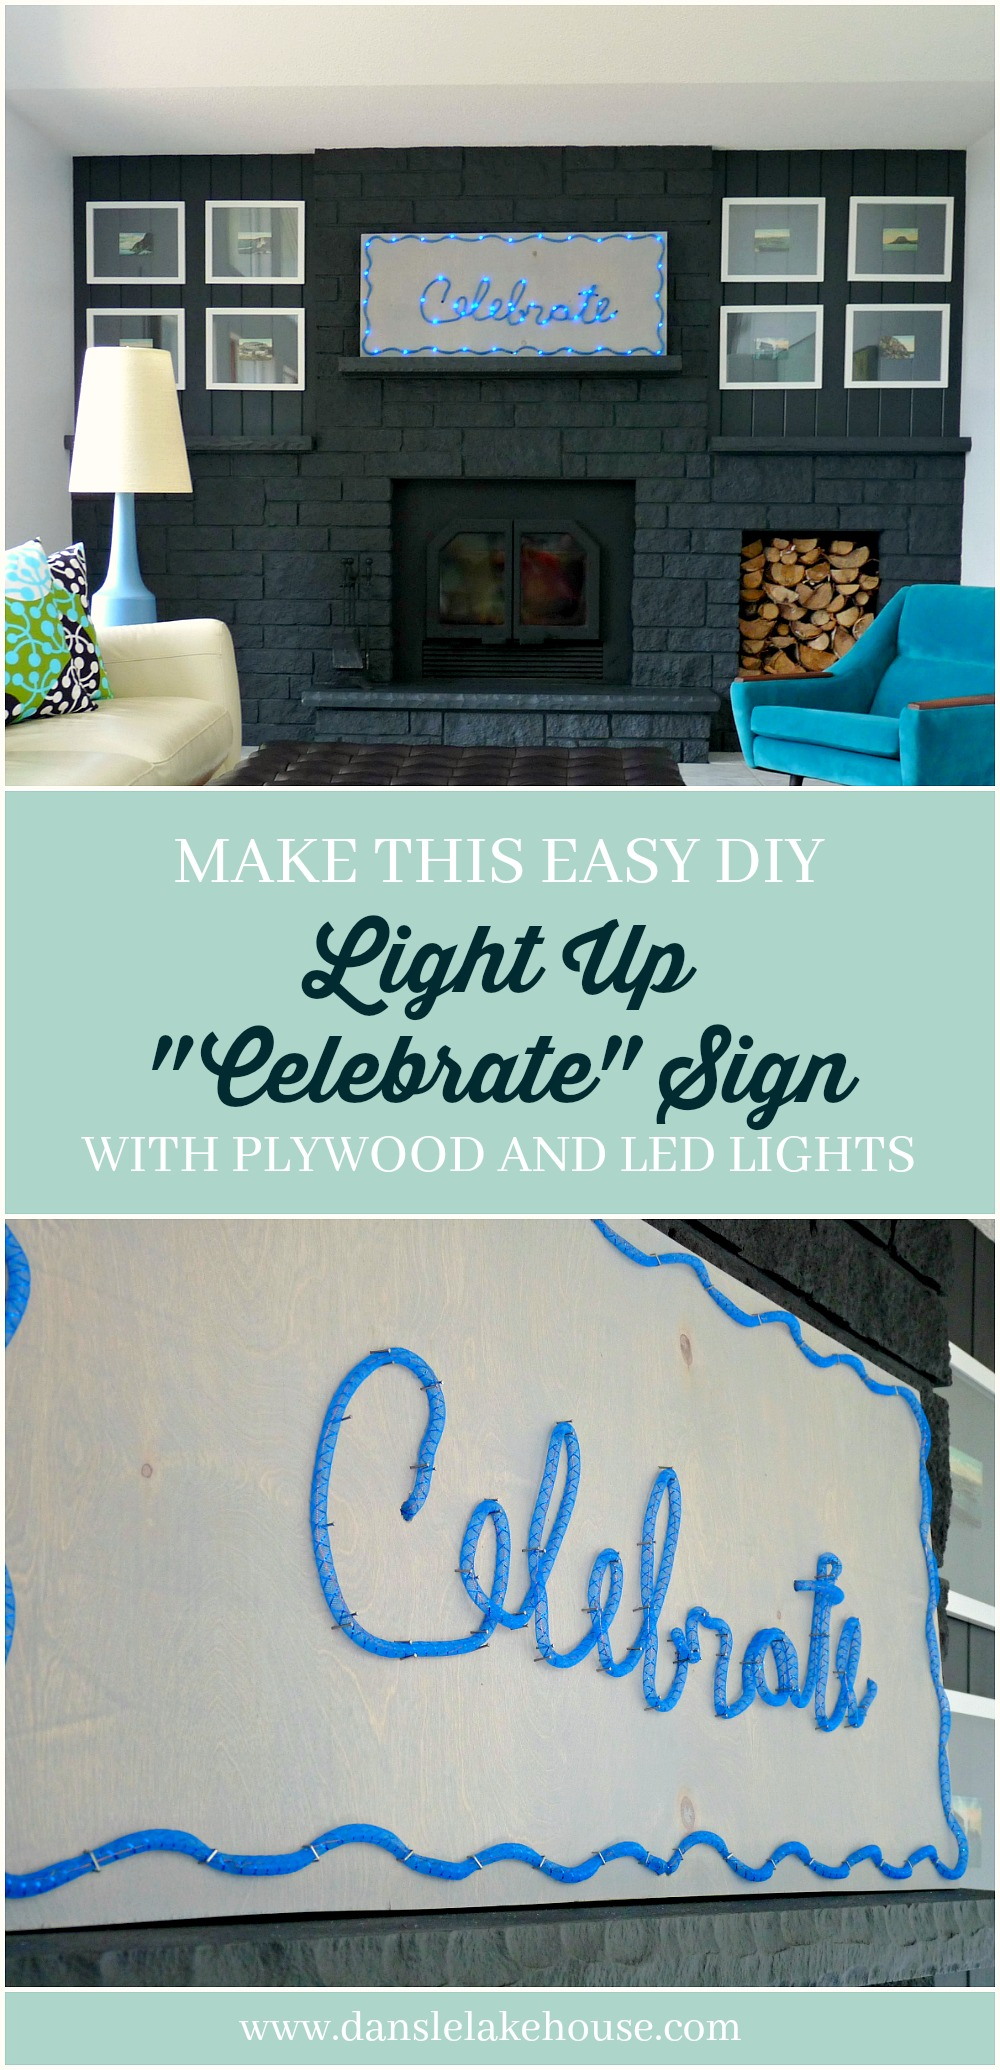 Easy DIY Light Up LED Celebrate Sign for Holiday Decorating